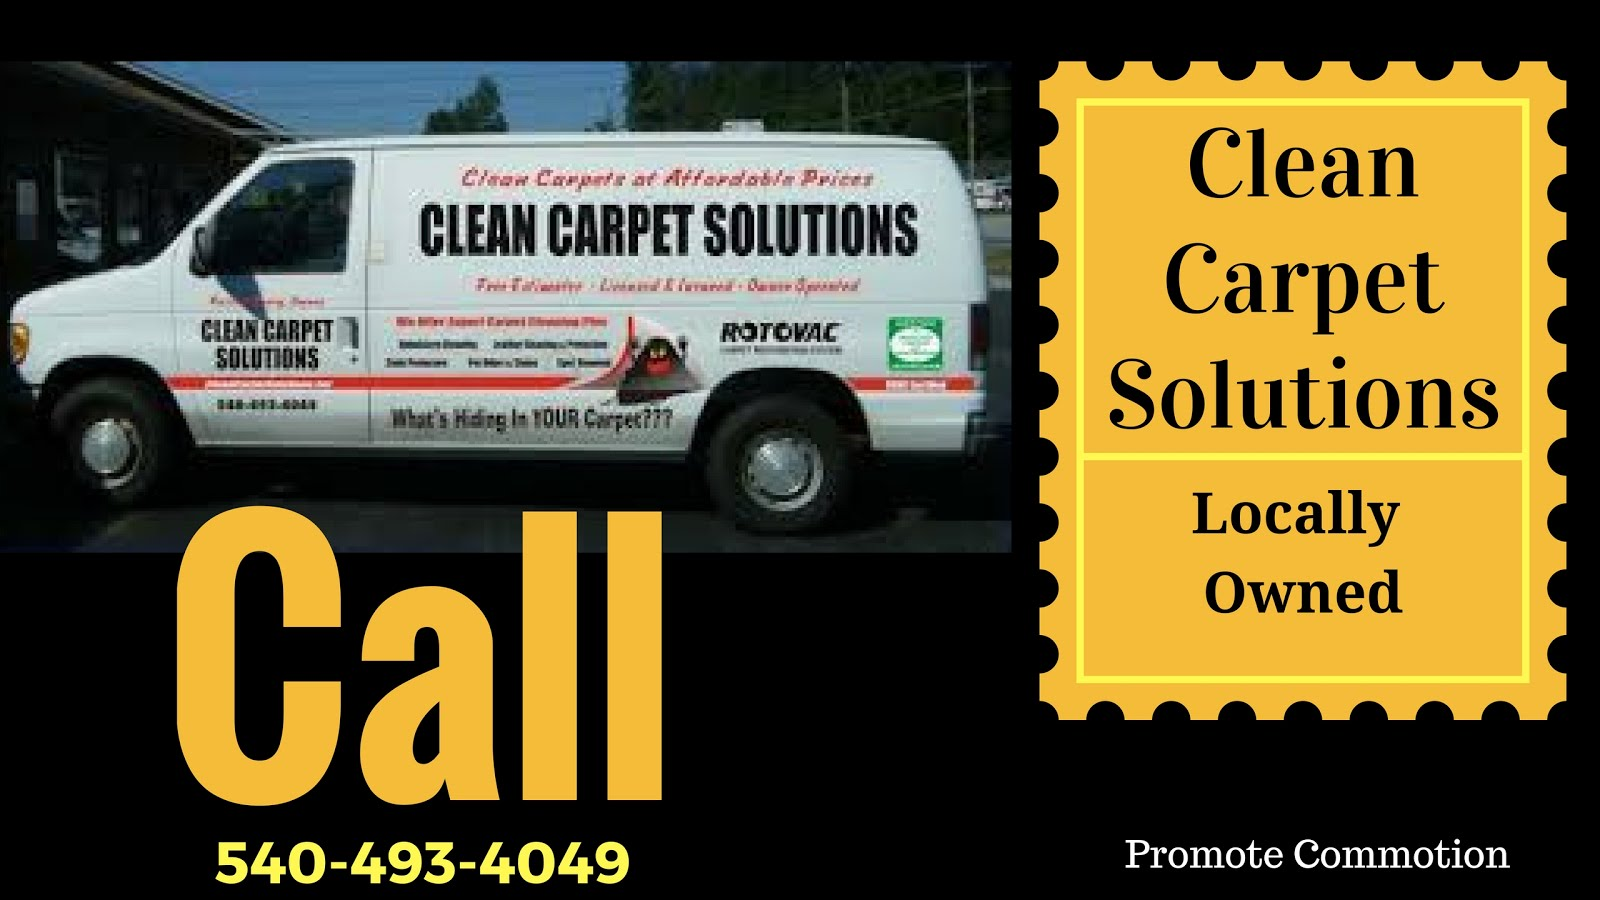 Clean Carpet Solutions